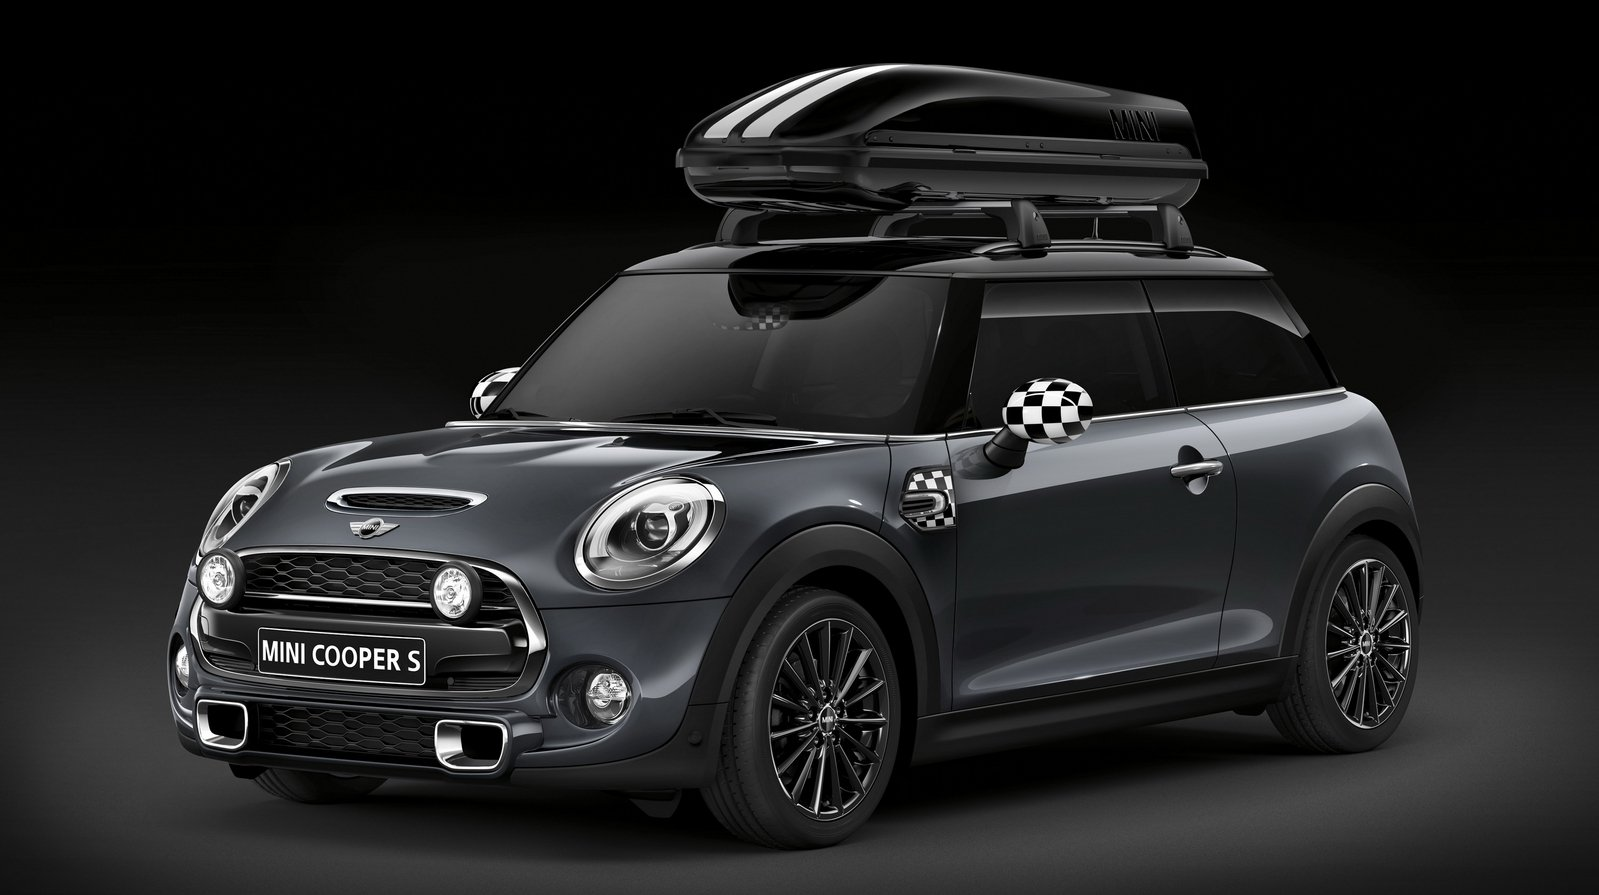 2015 MINI Cooper S With John Cooper Works Pro Parts Review